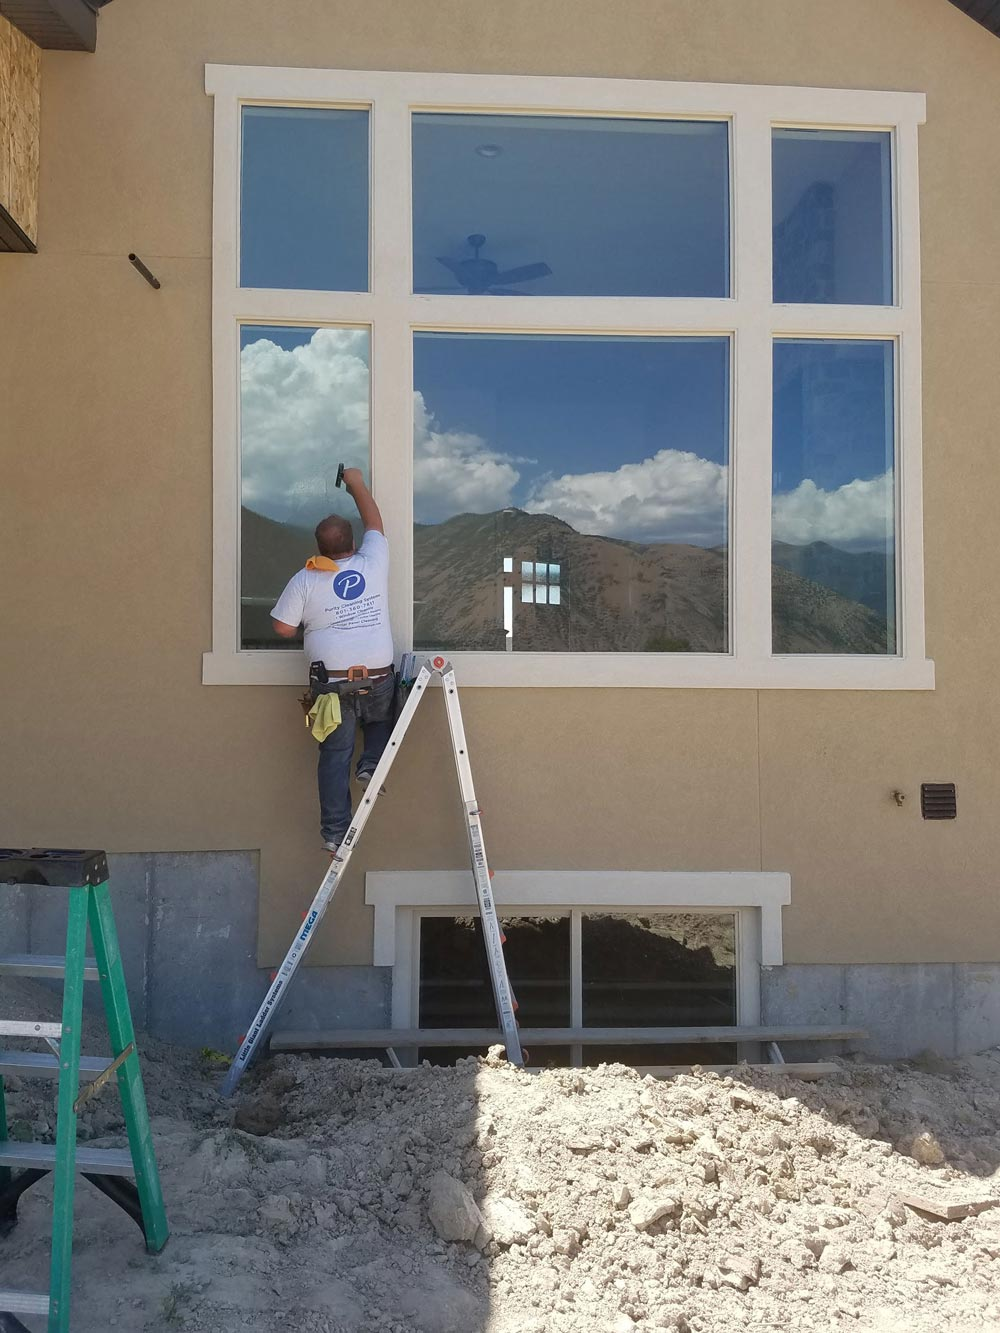 Residential window cleaning in Utah County